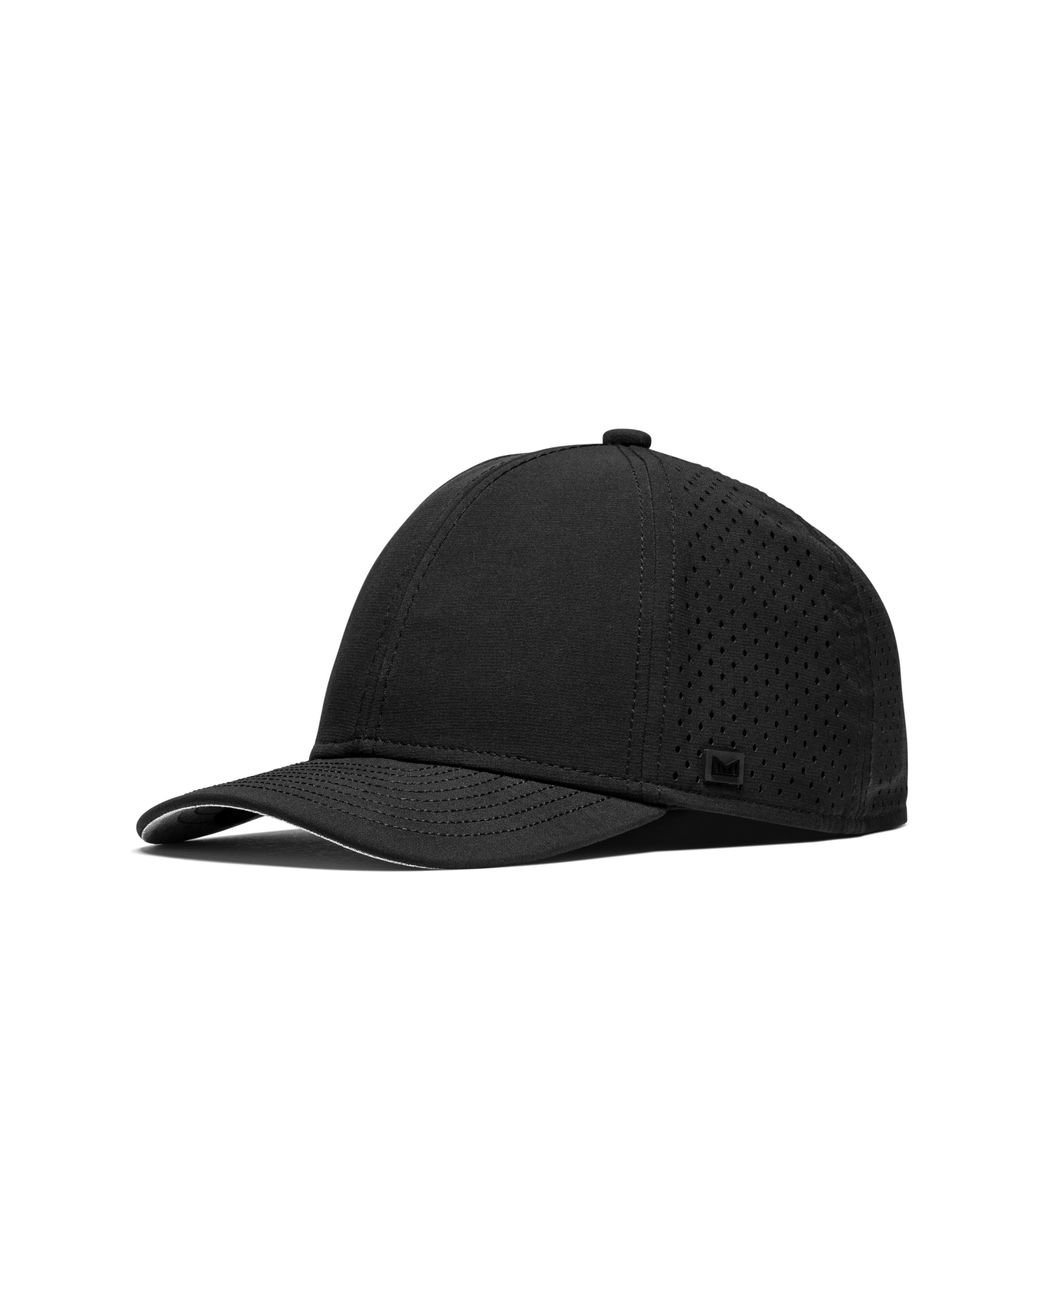 wholesale dealer 732bf a457f Melin Hydro A-game Snapback Baseball Cap in Black for Men - Lyst